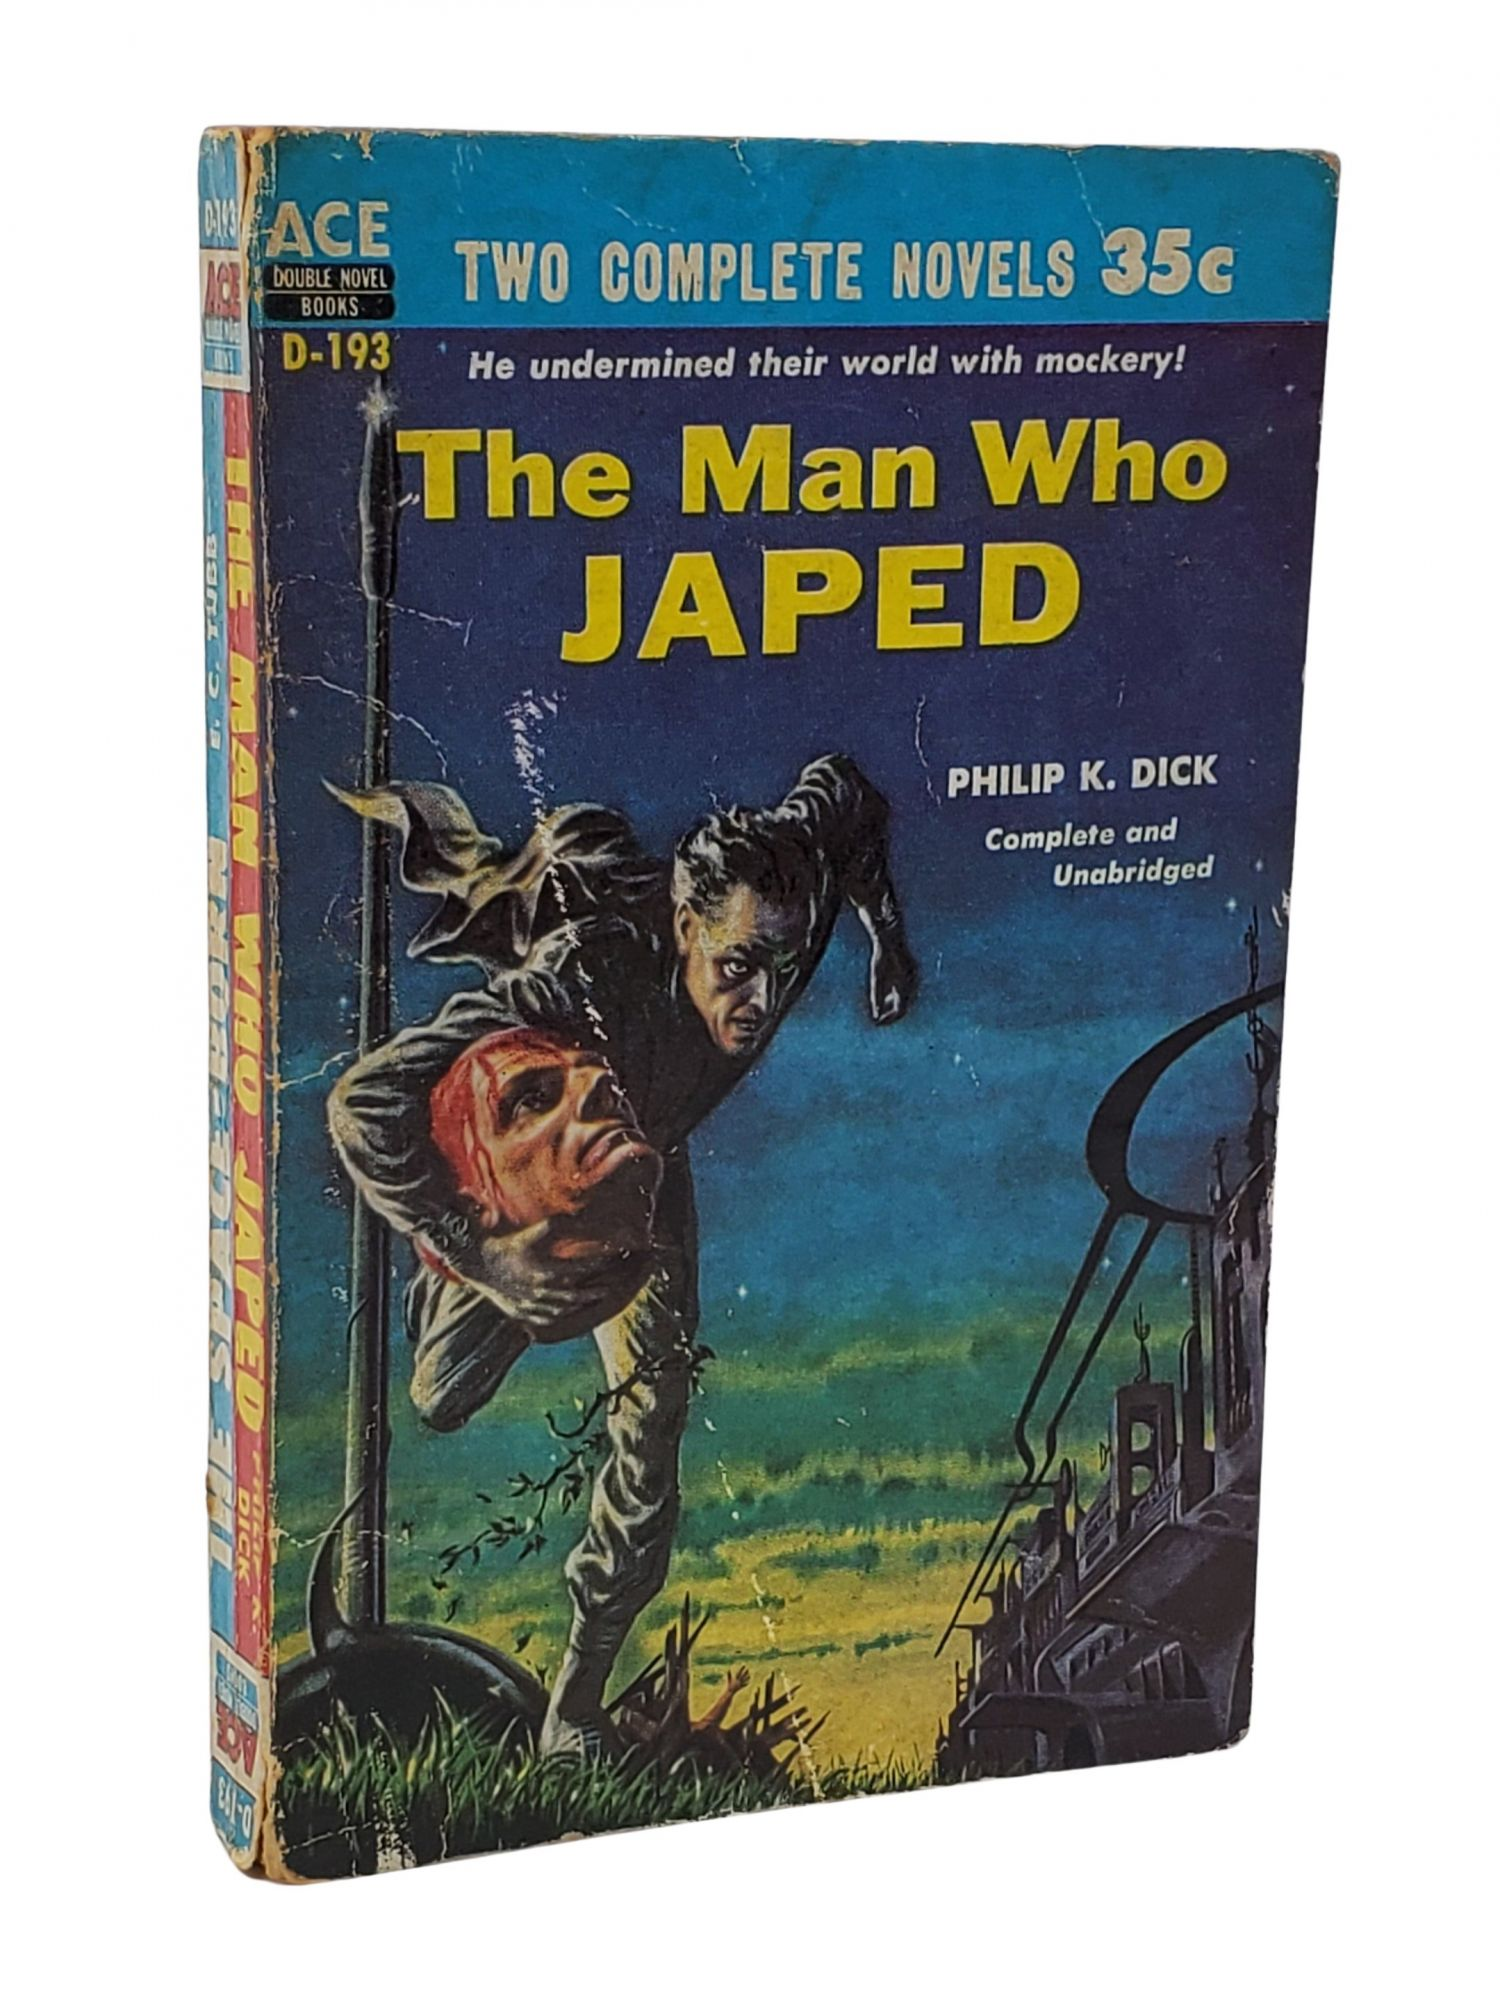 The Man Who Japed. Philip K. Dick.